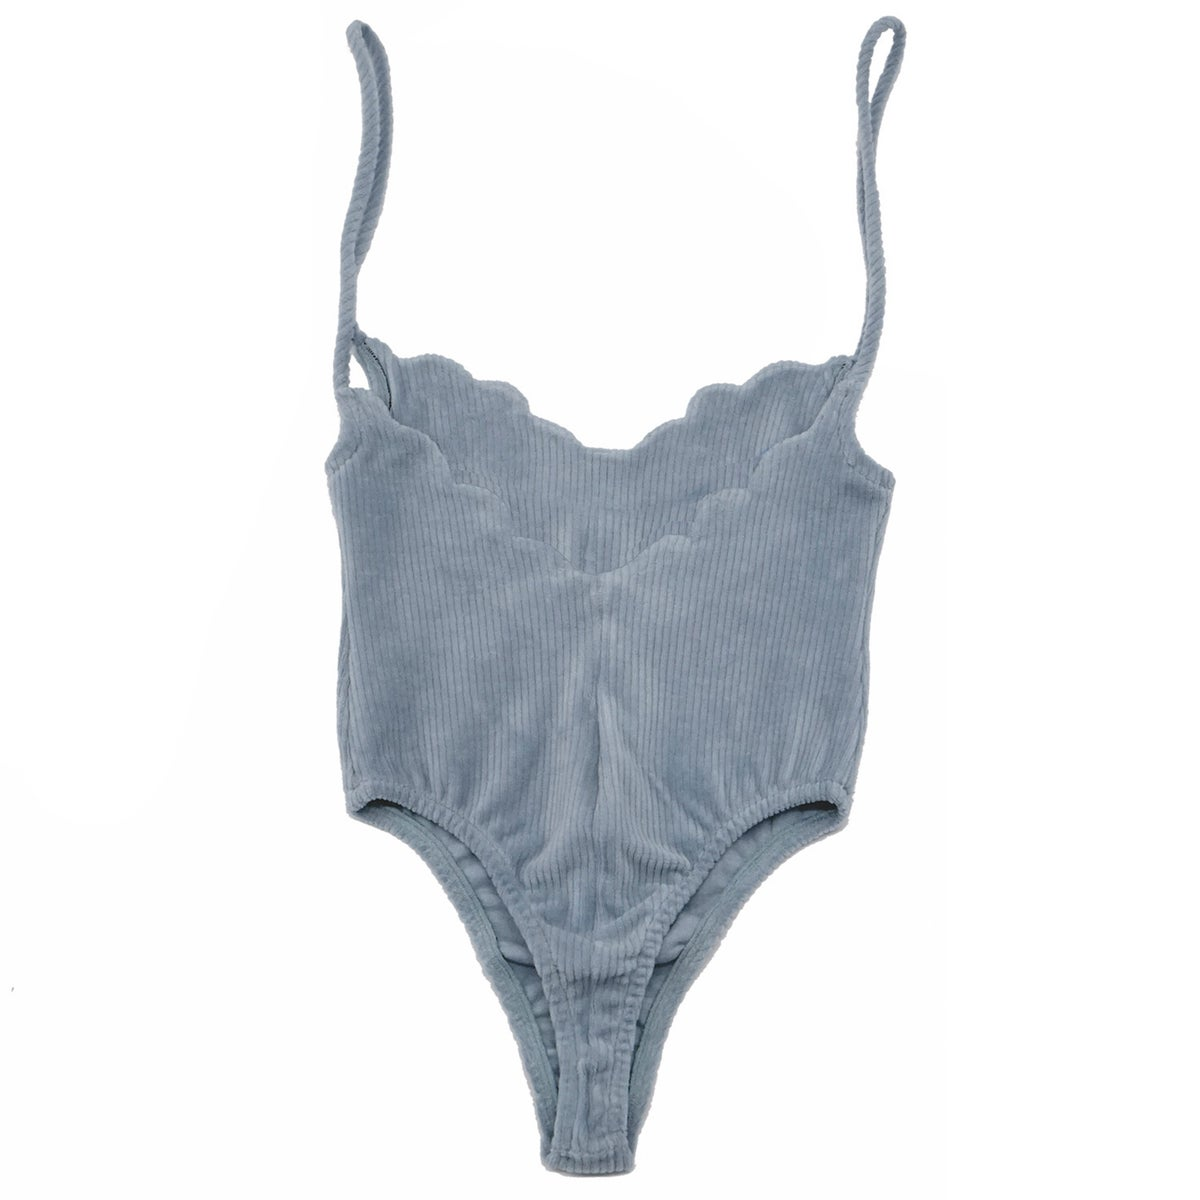 70'S SCALLOP BODYSUIT- WASHED OUT DENIM BLUE